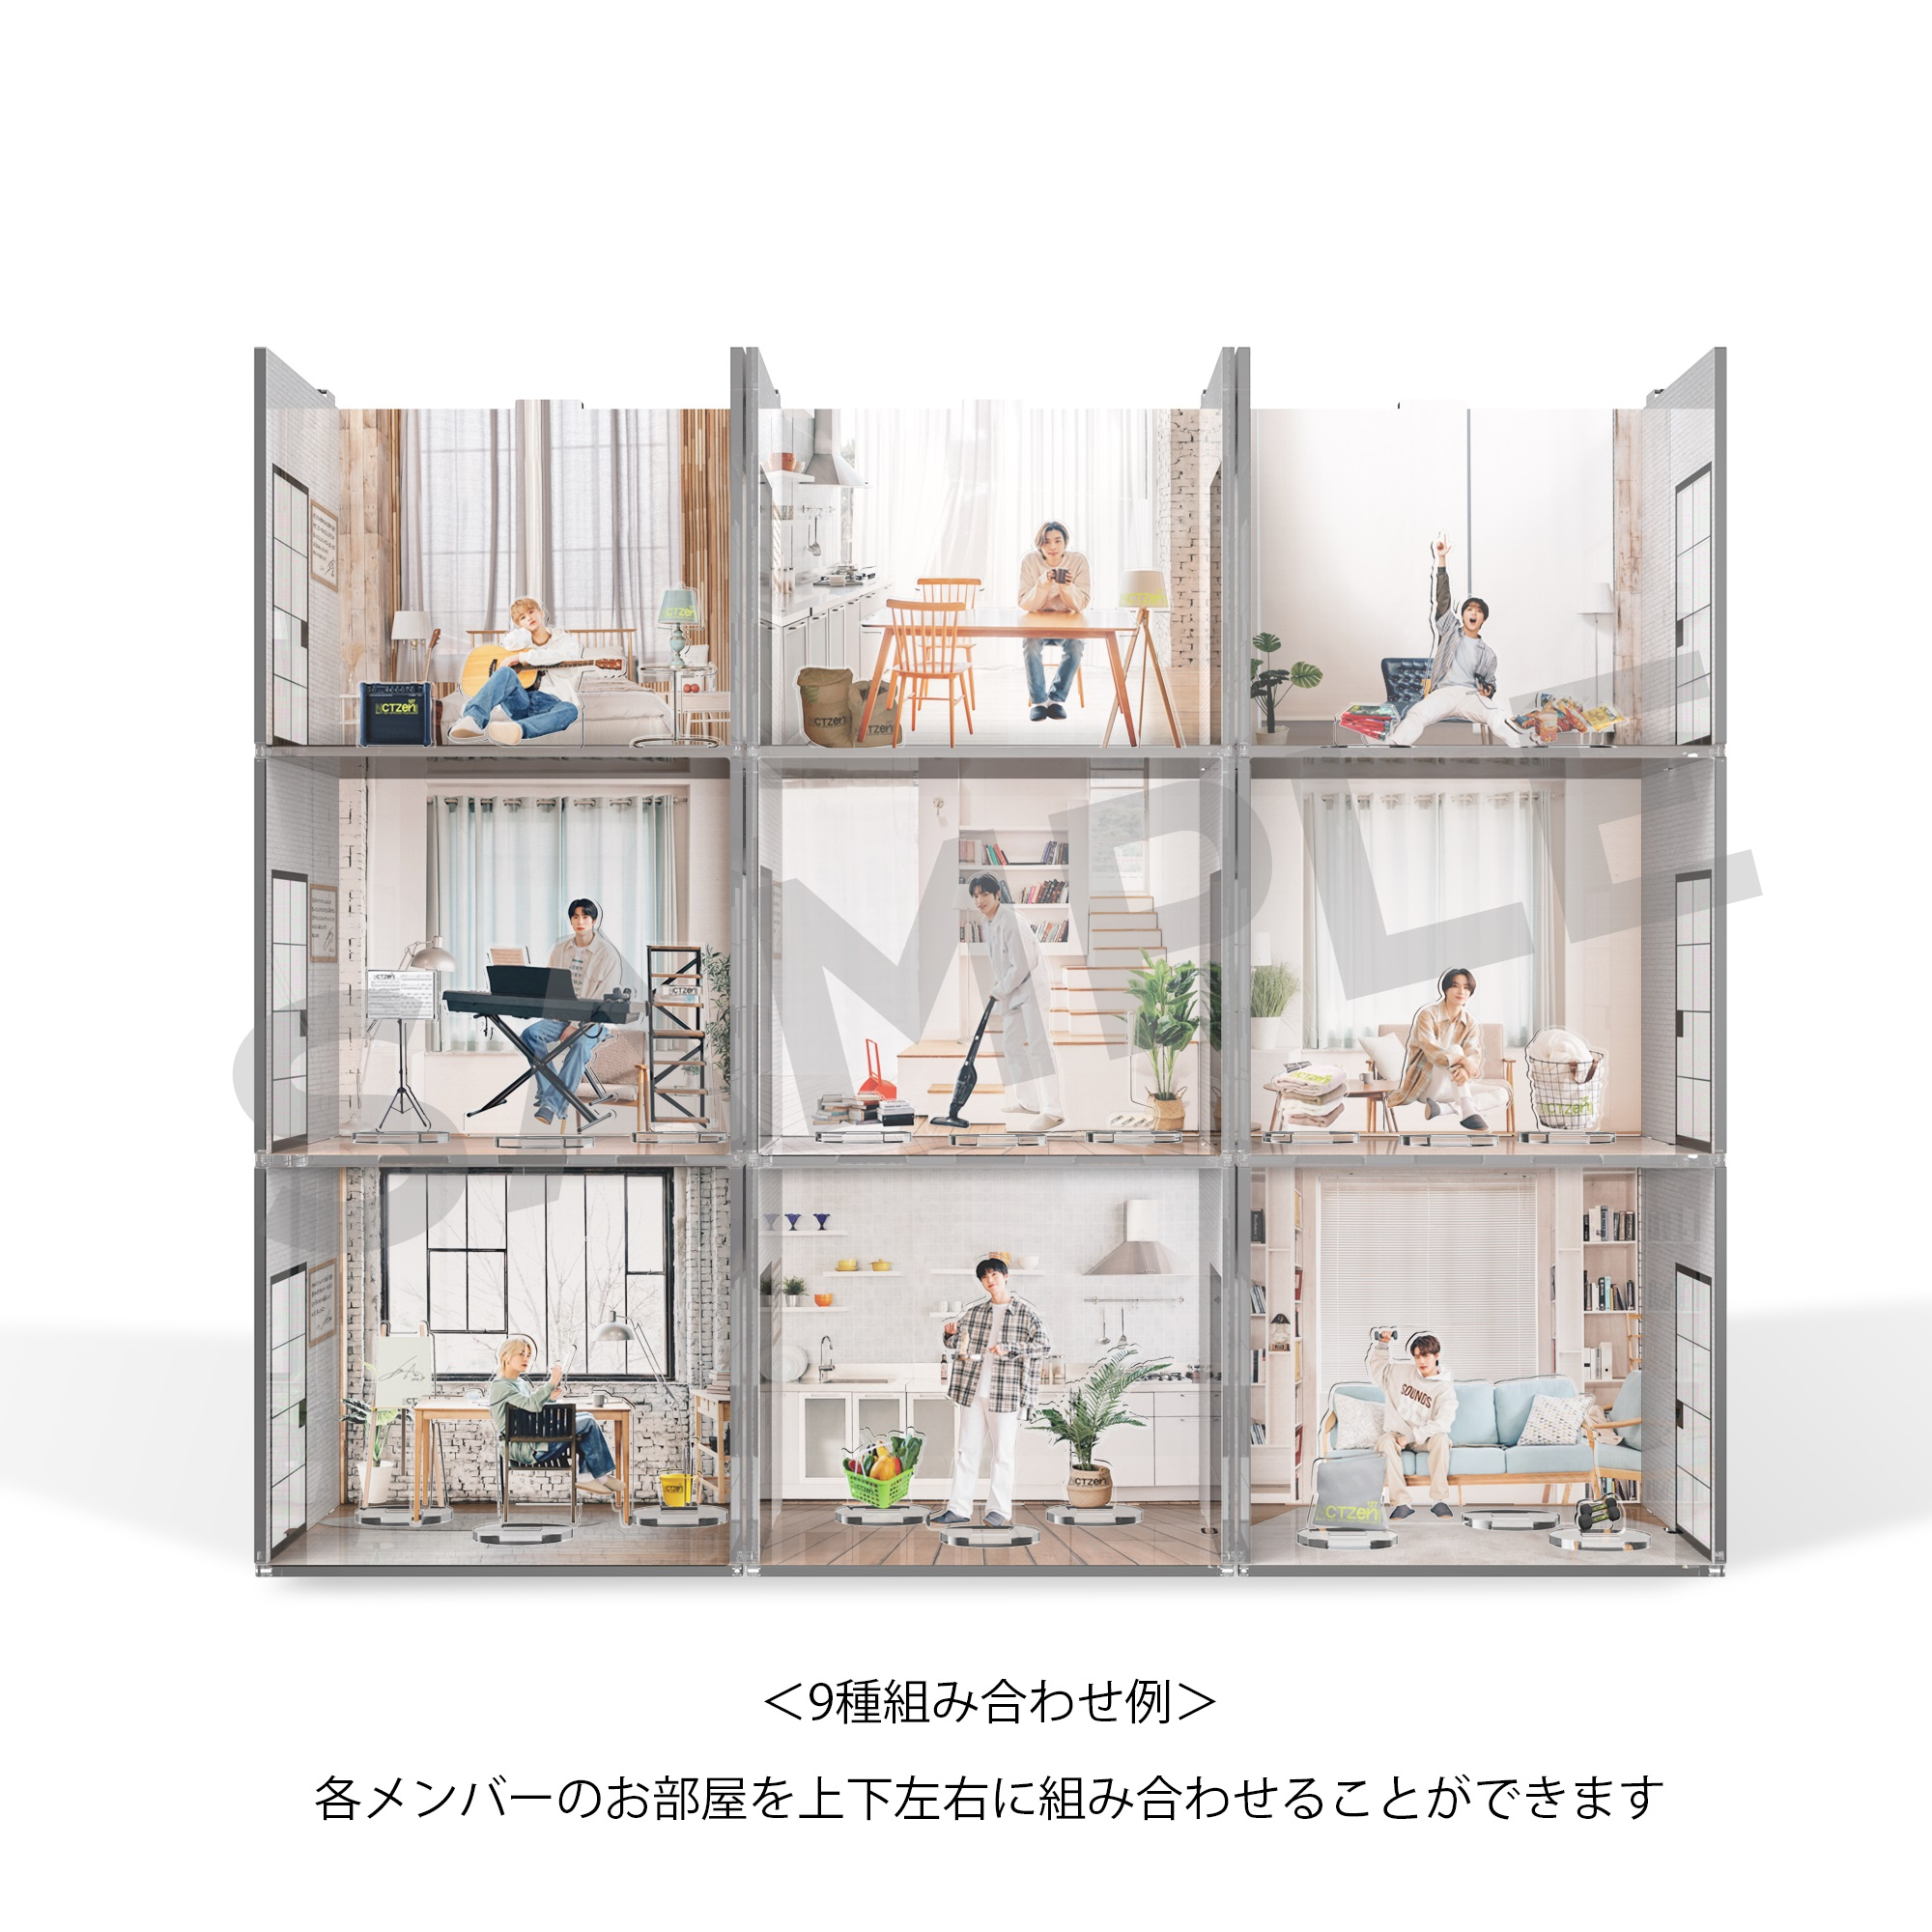 【NCT 127】『NCT 127 OFFICIAL BOOK Vol.4』グッズを、メンバー別に詳しく紹介!_11